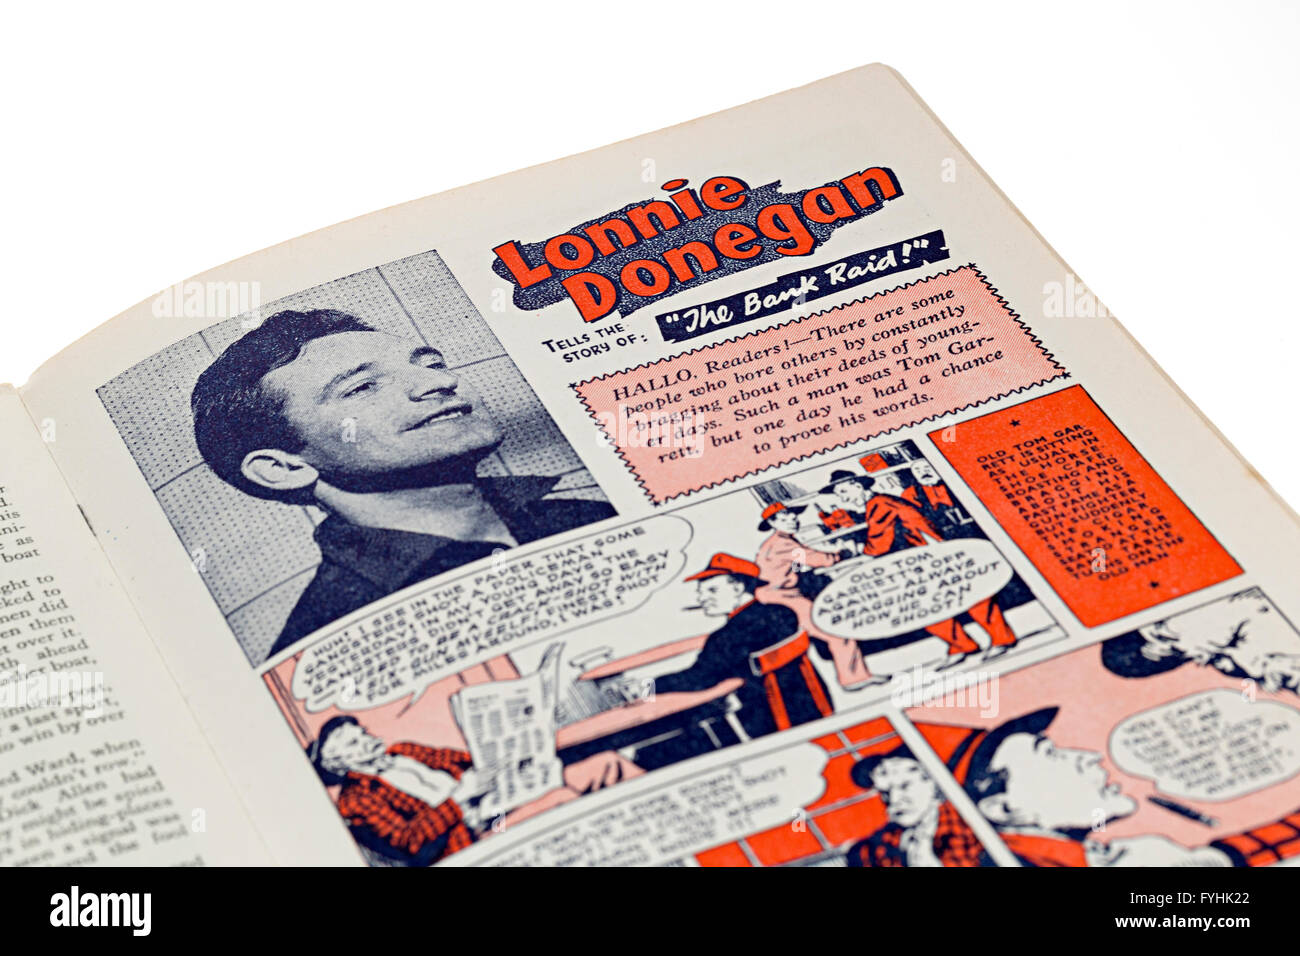 Lonnie Donegan comic book story for children, published in 1960 UK - Stock Image